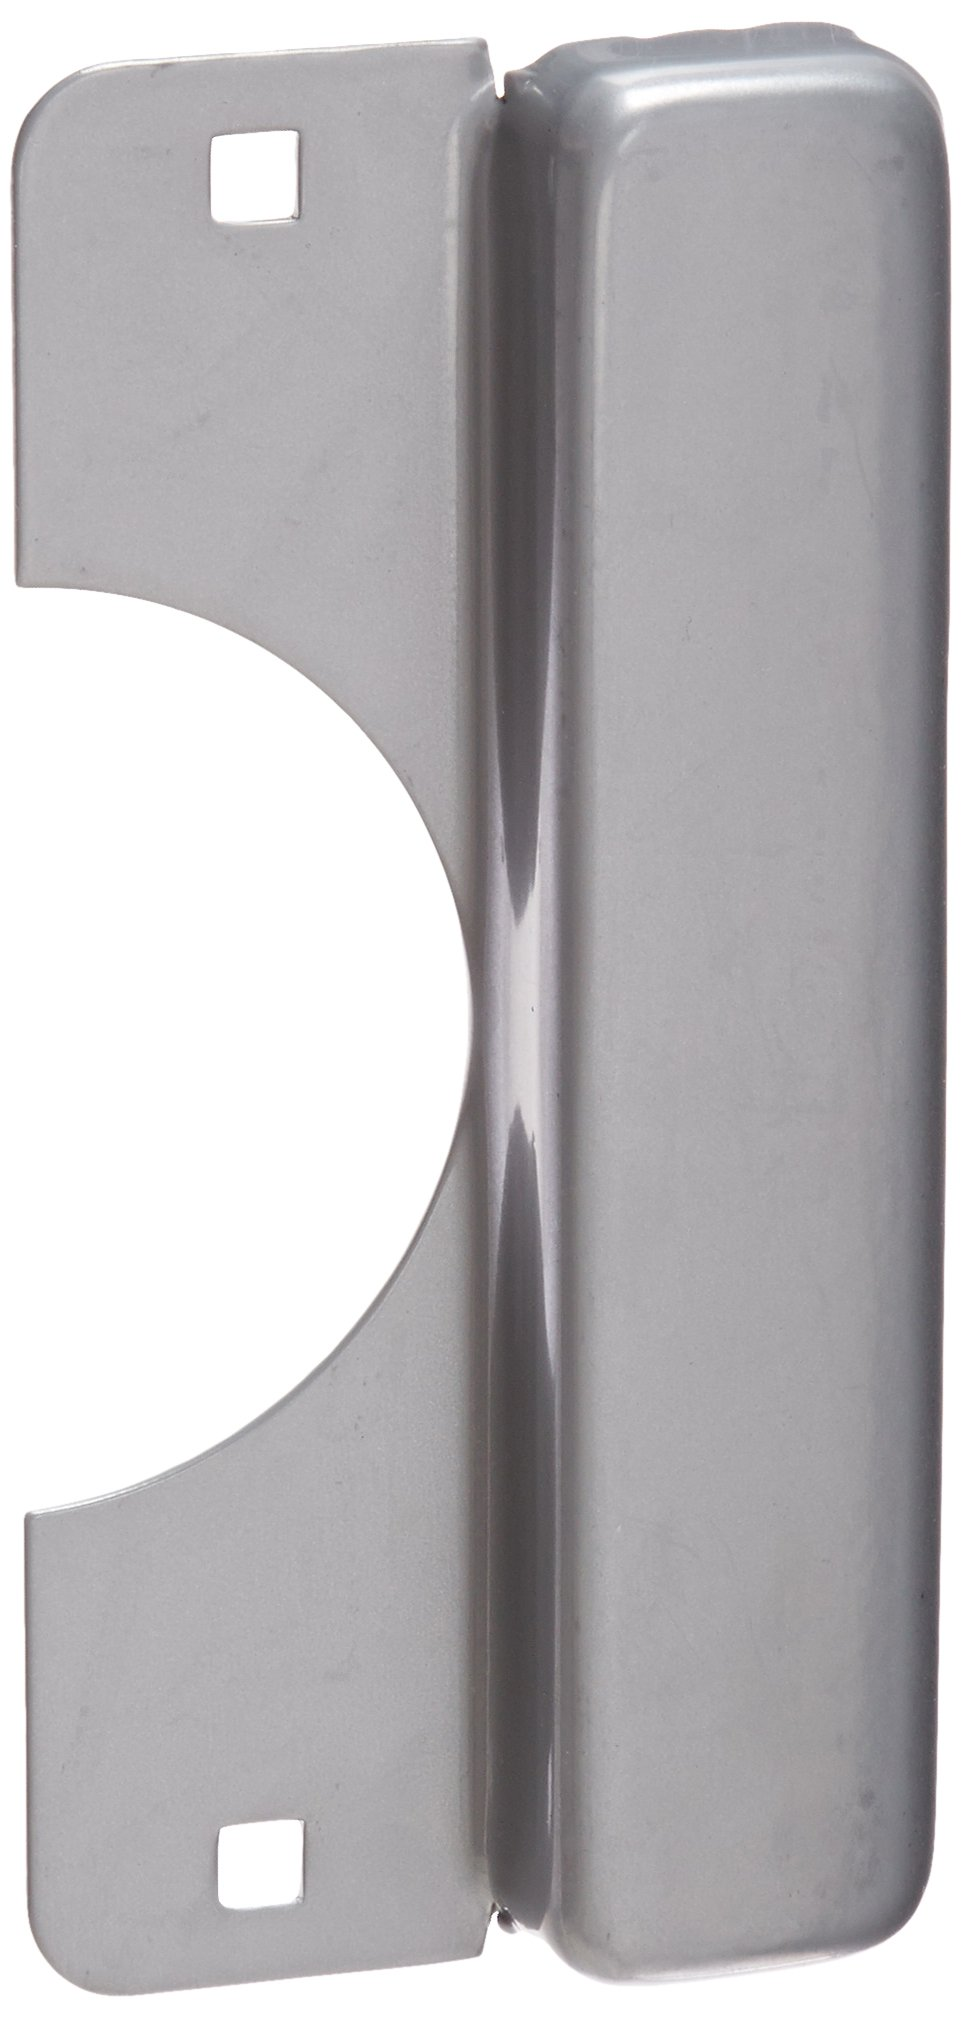 Don-Jo LELP 208 12 Gauge Steel Latch Protector, Silver Coated Finish, 3-1/2'' Width x 8'' Height, For Electric Strikes (Pack of 10)